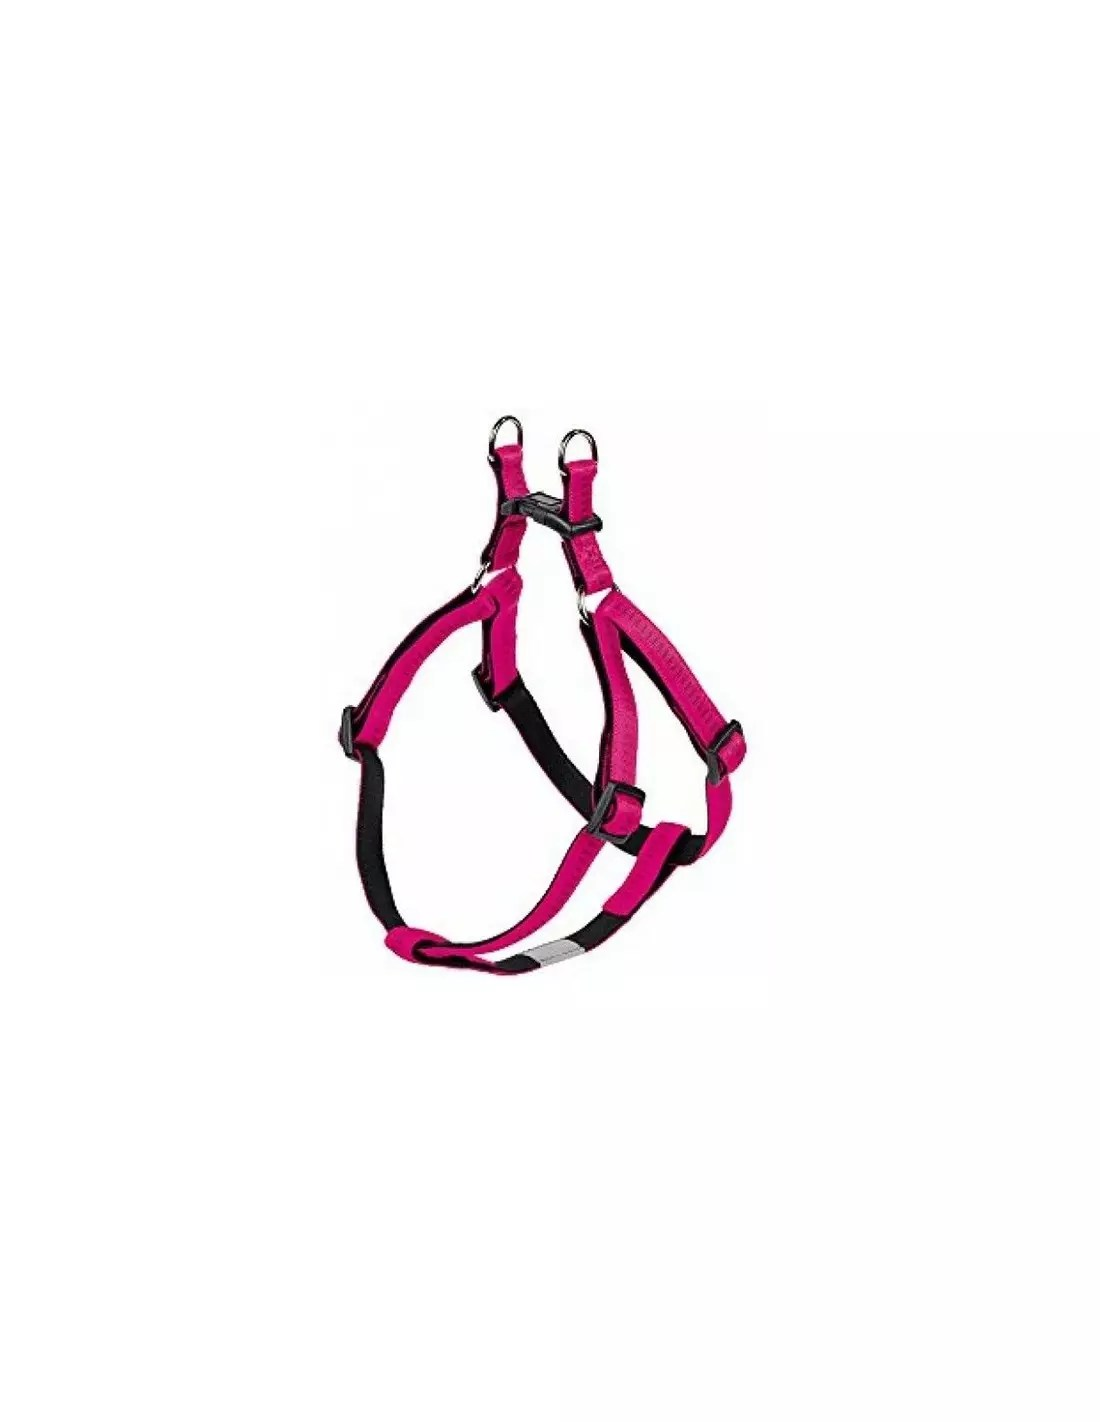 Nobby Soft Grip Dog Harness 40 56 15mm Purple Black